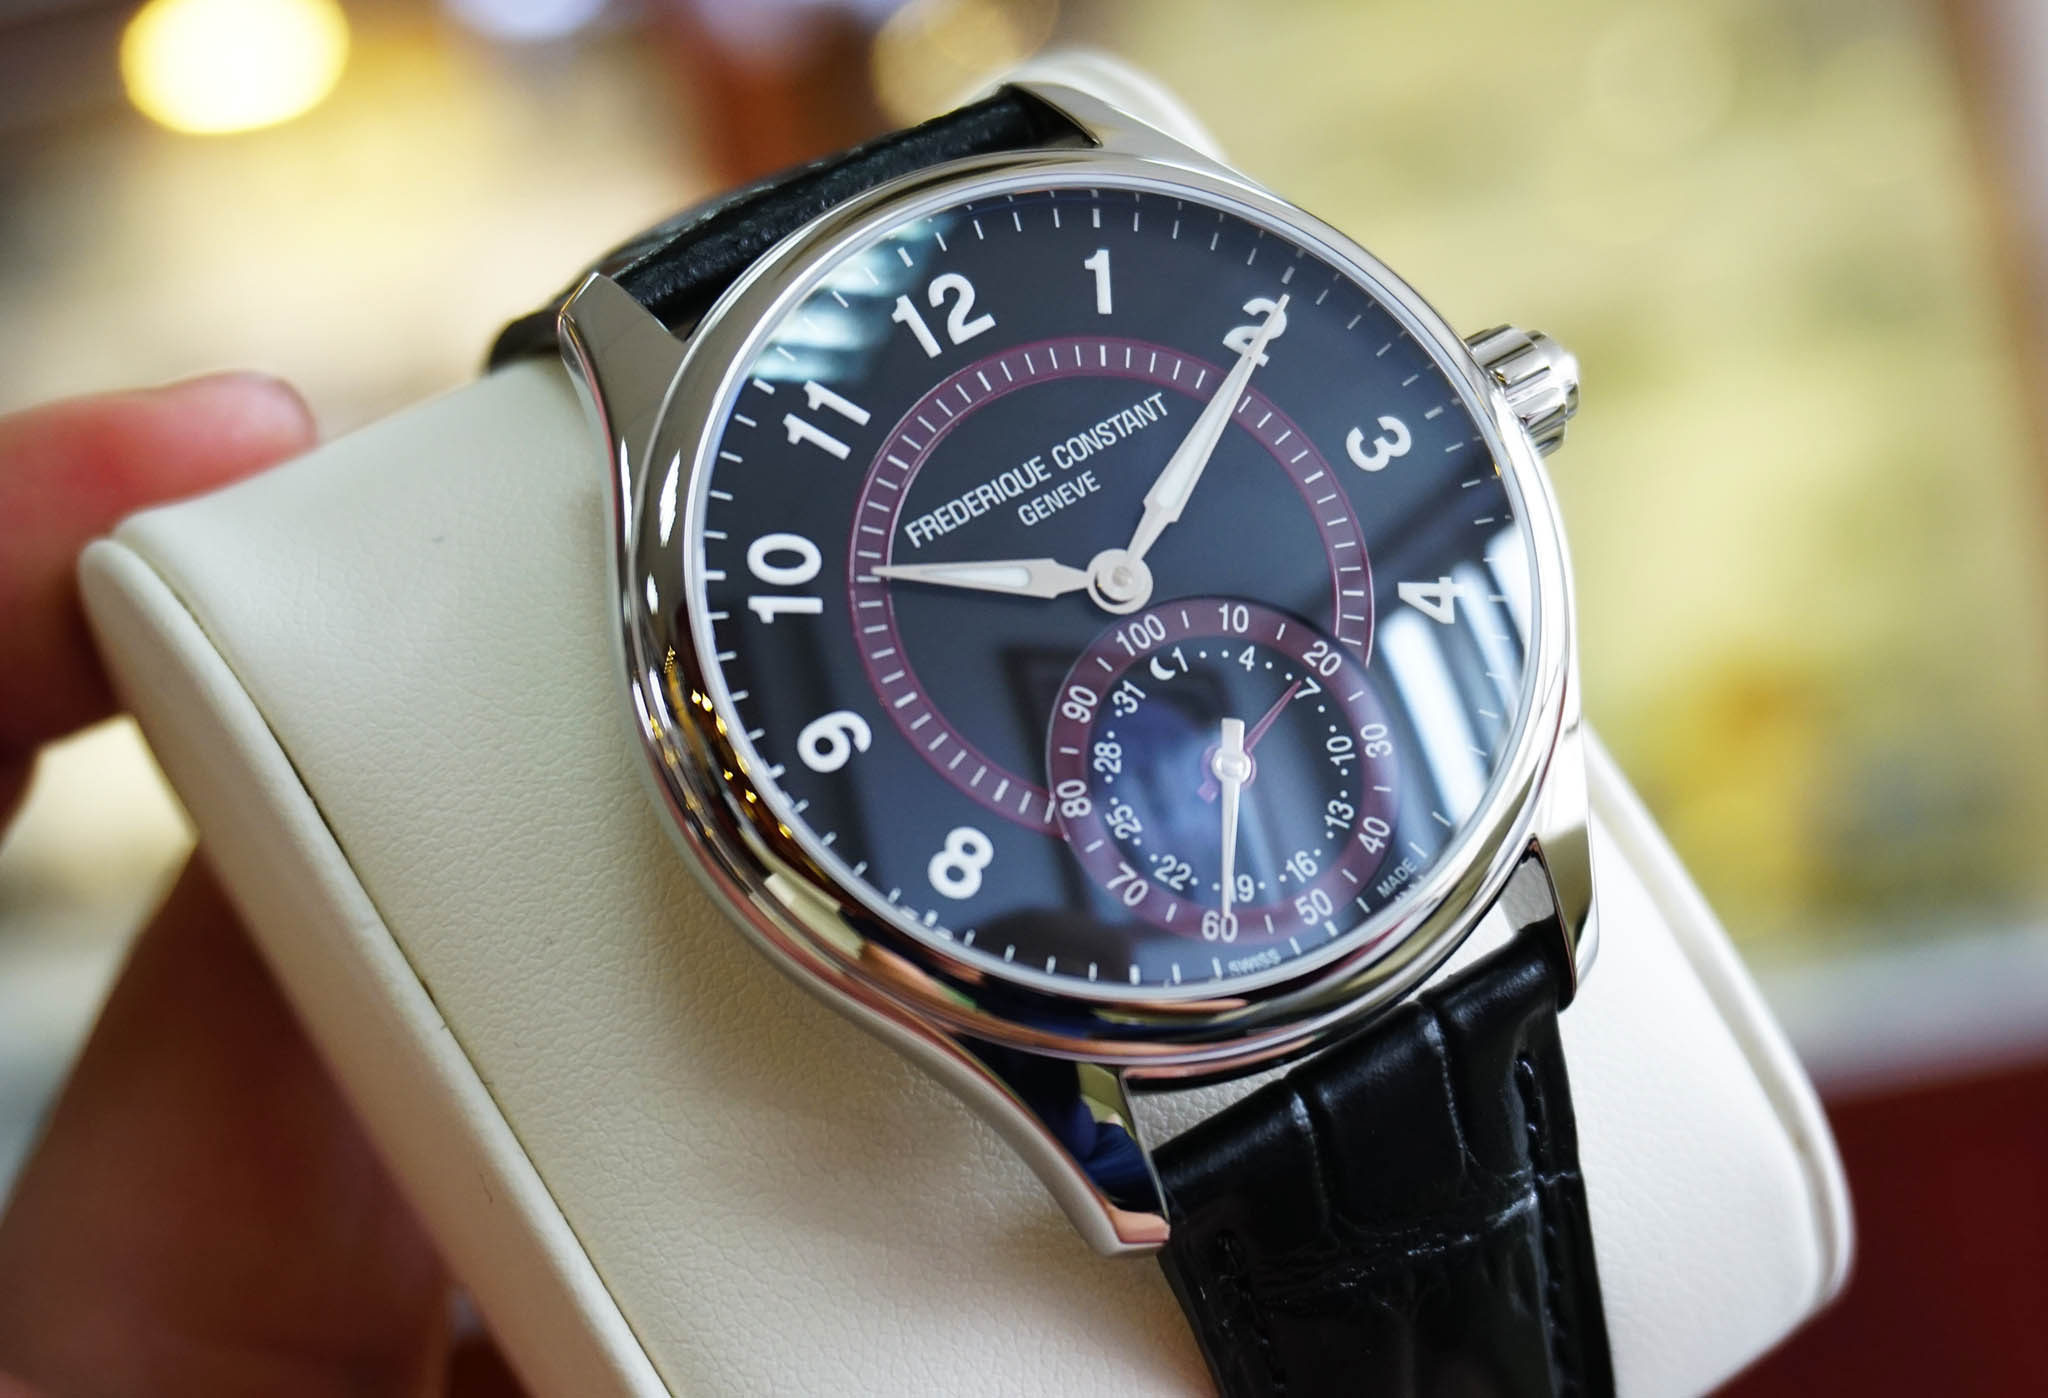 Black and maroon dial colors